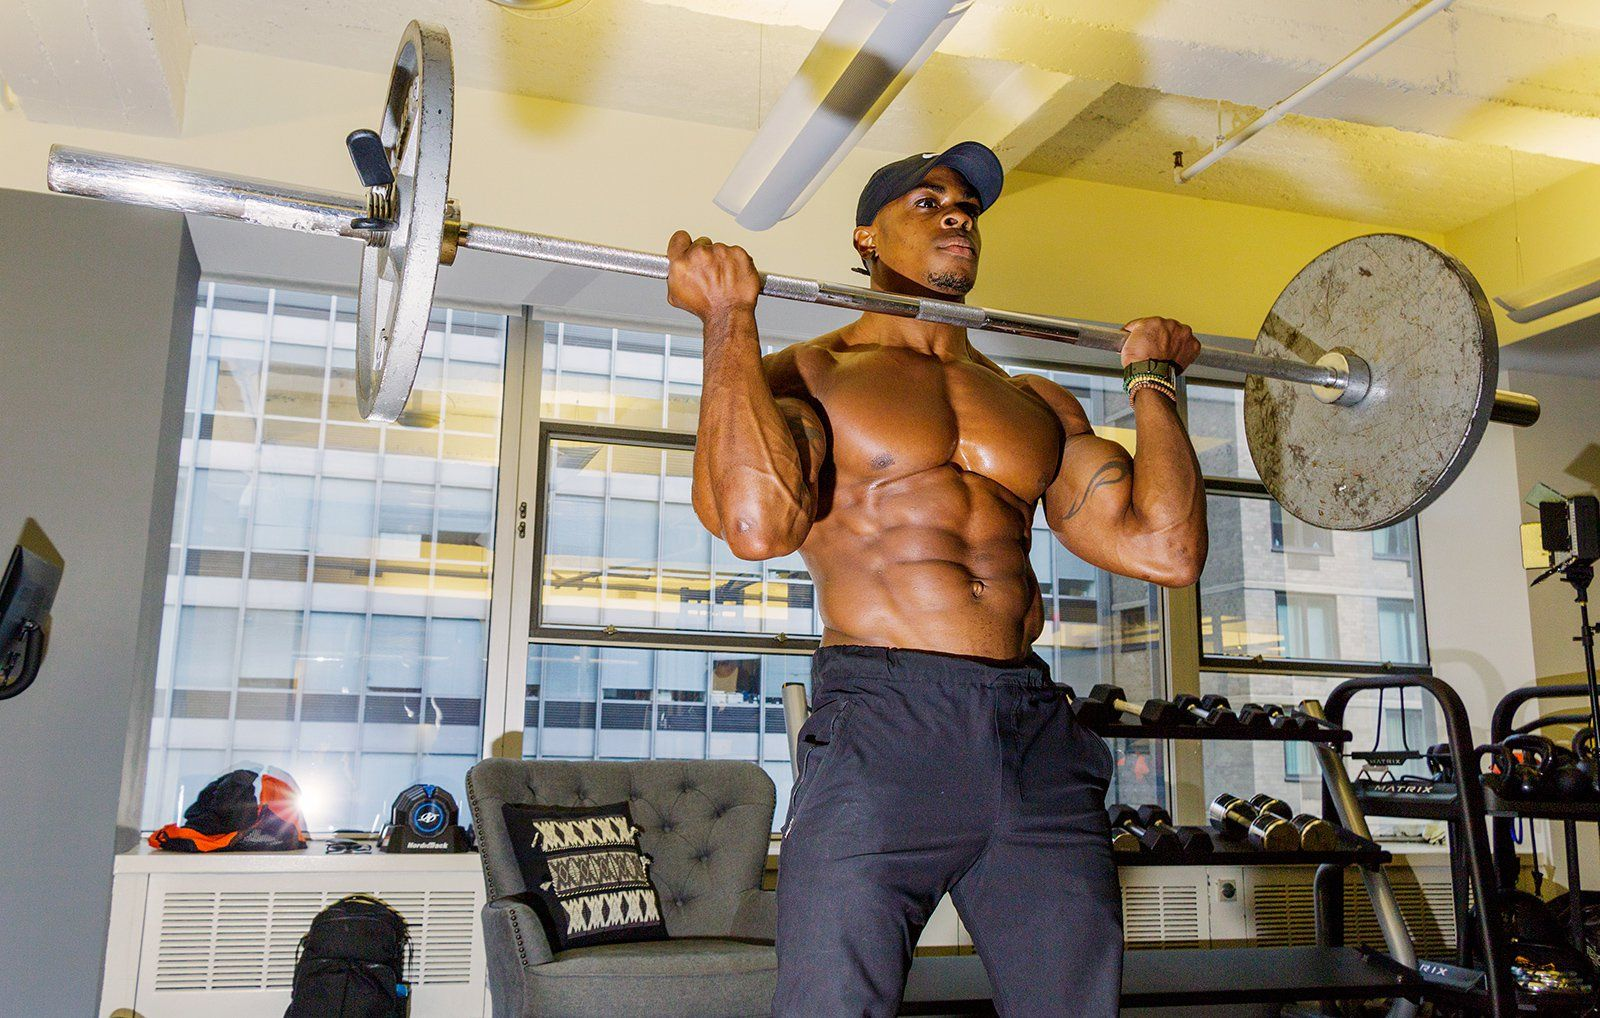 Get herculean muscles with these three intense moves